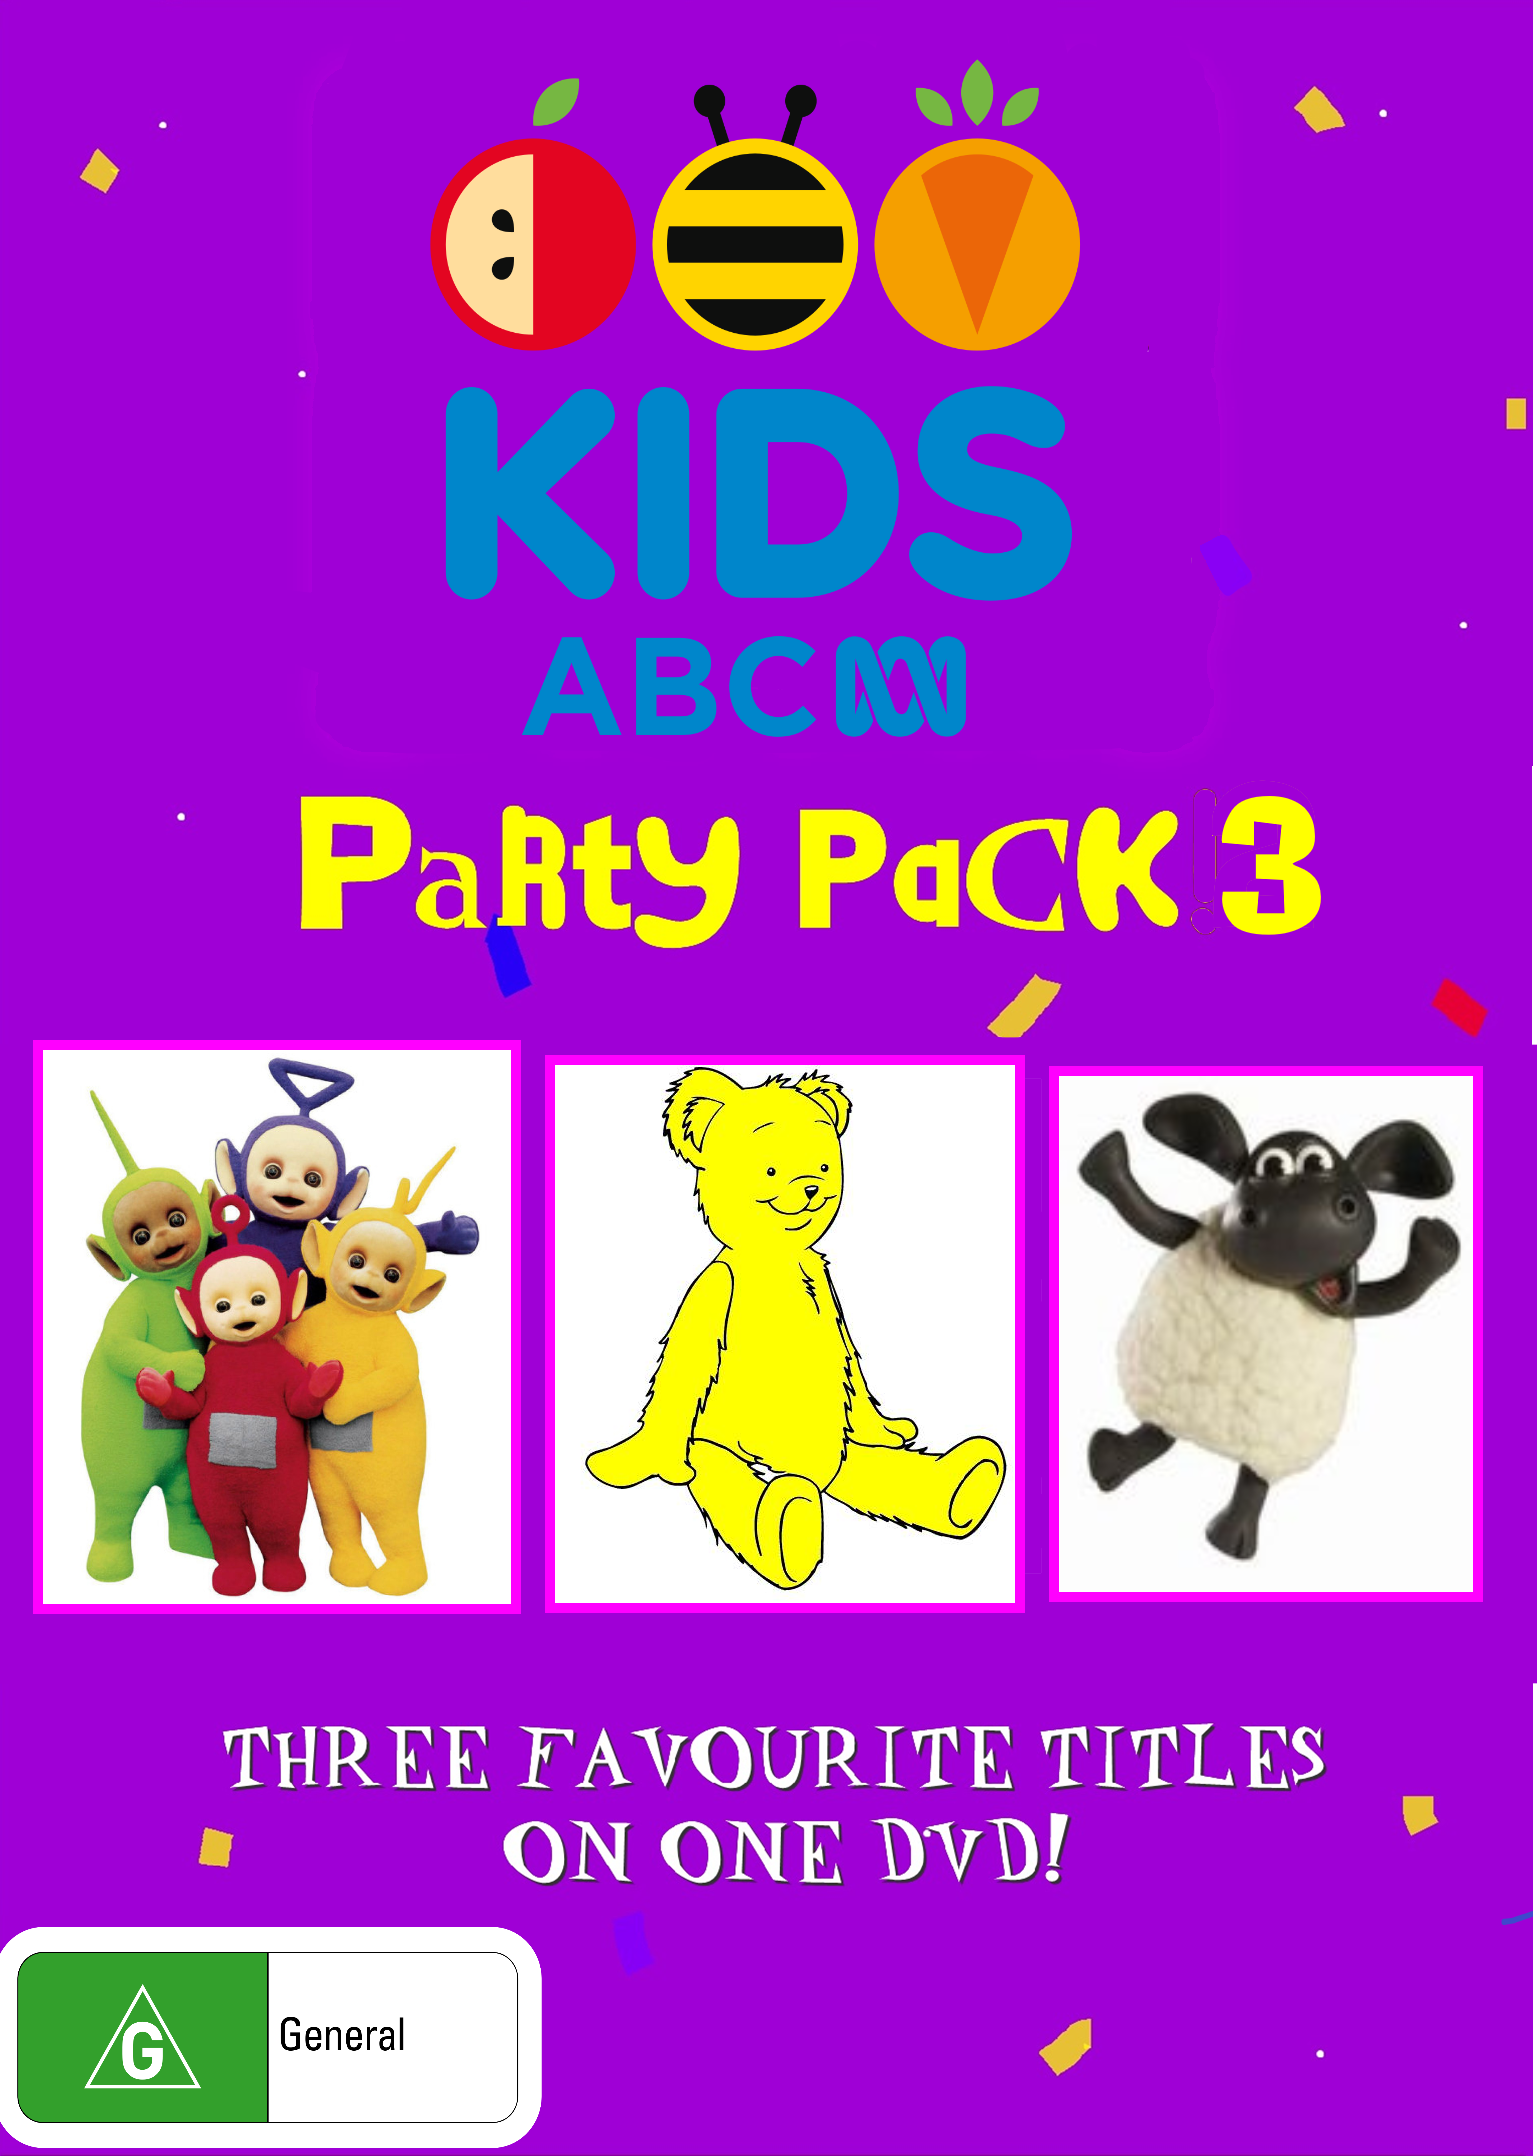 ABC for Kids Party Pack 3